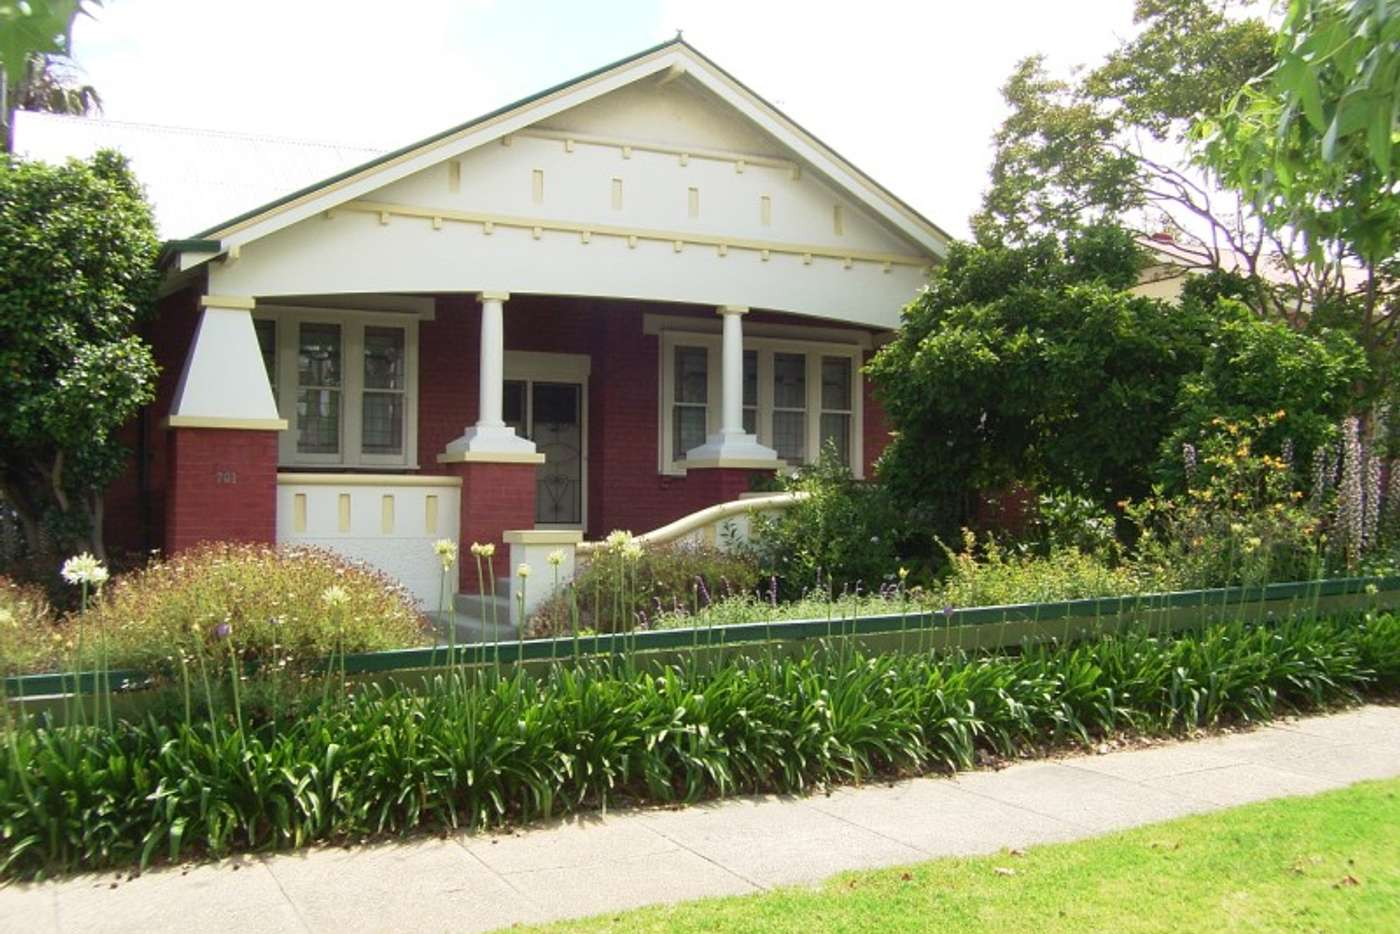 Main view of Homely house listing, 701 Pemberton Street, Albury NSW 2640